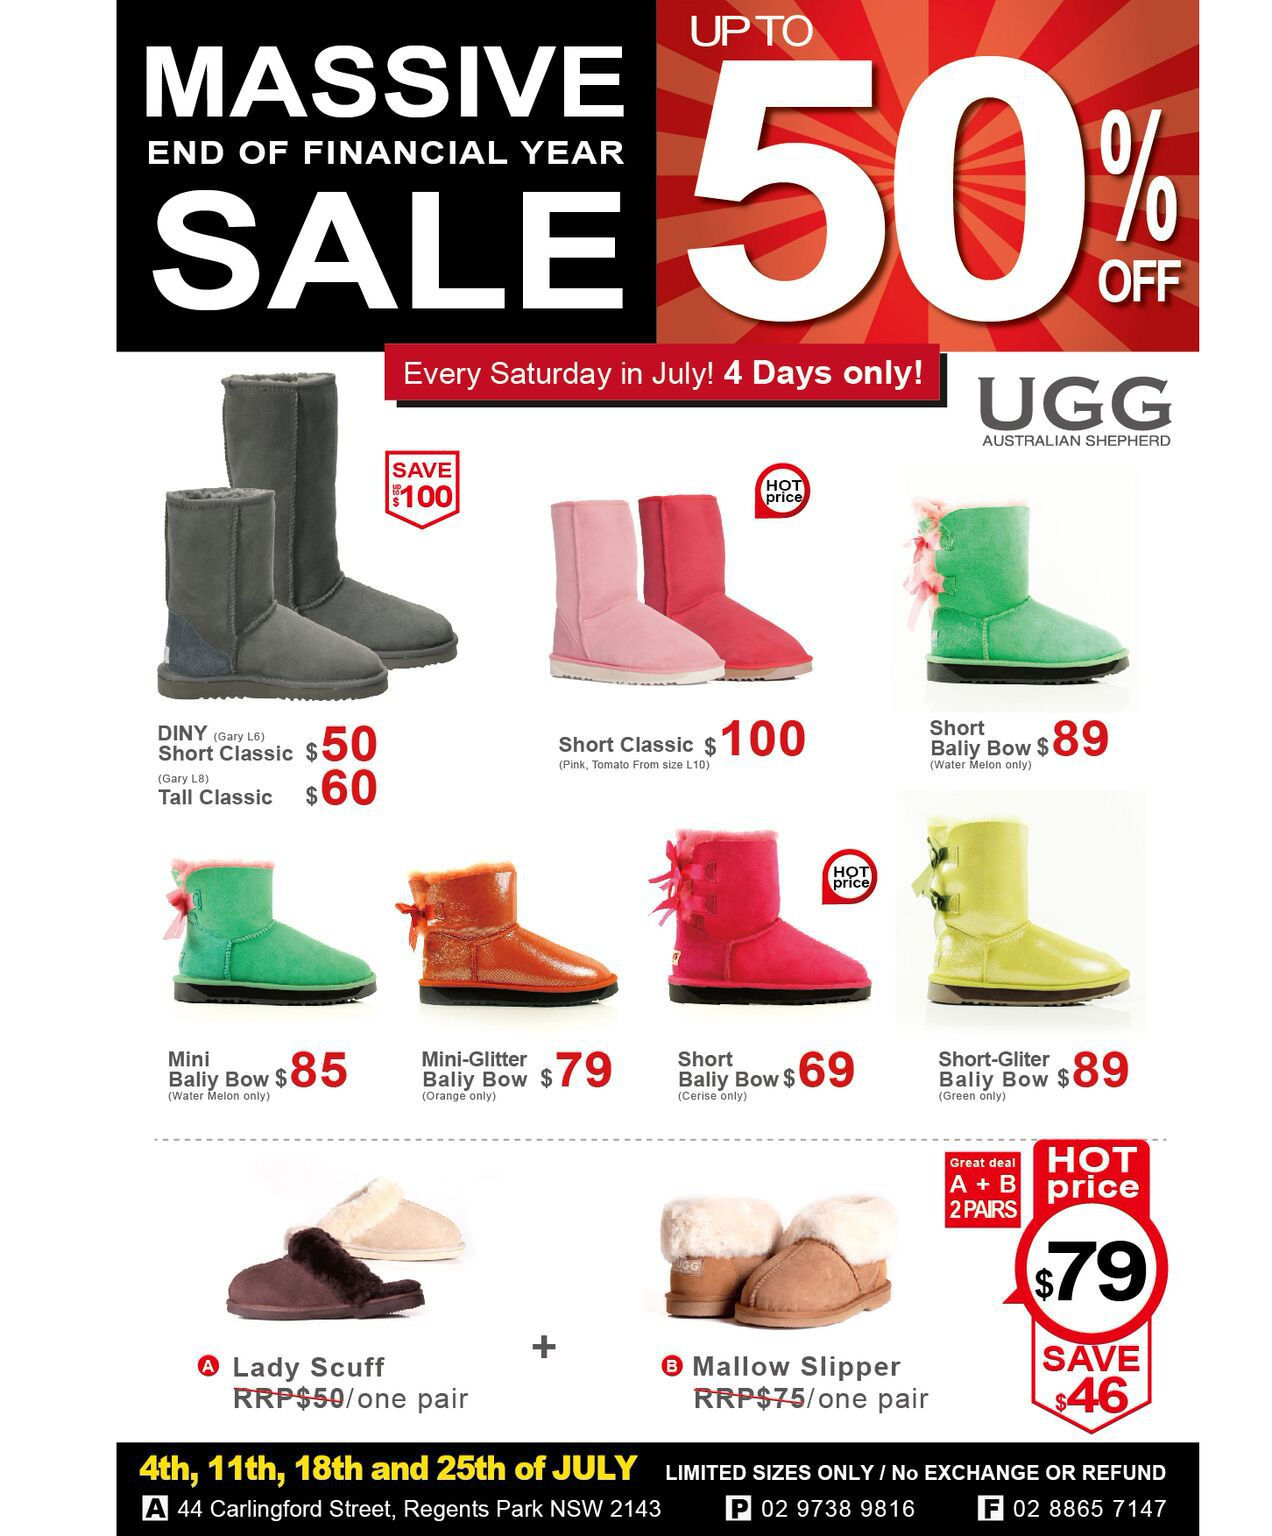 UGG Boots Factory Outlet Clearance Sale - Up to 50% Off - Sydney 570602b8cc4